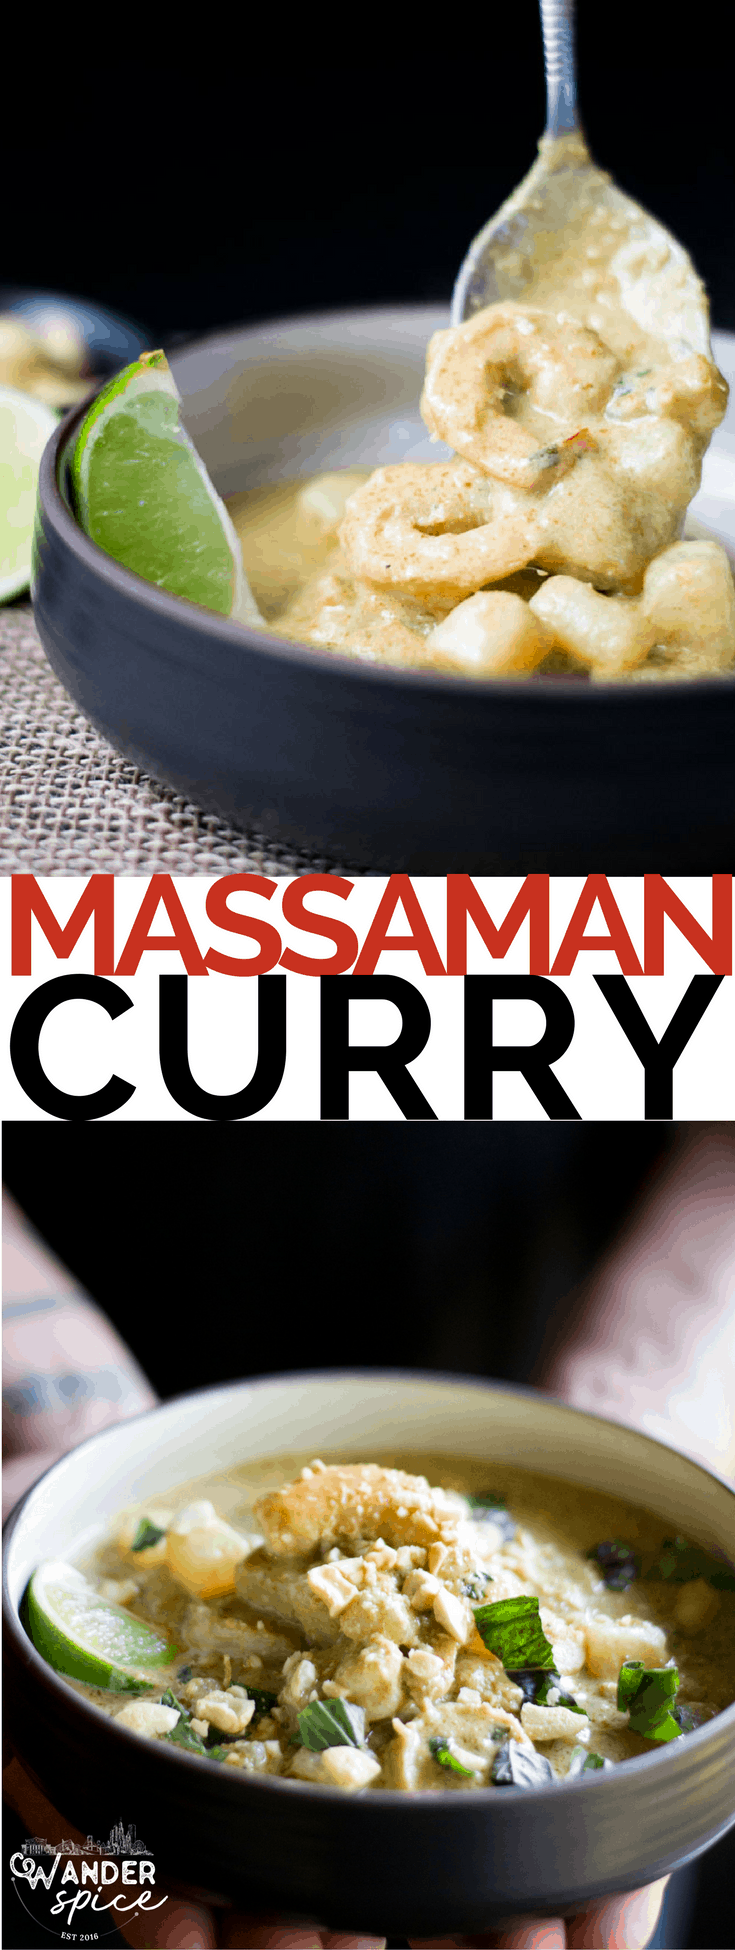 massaman curry pin